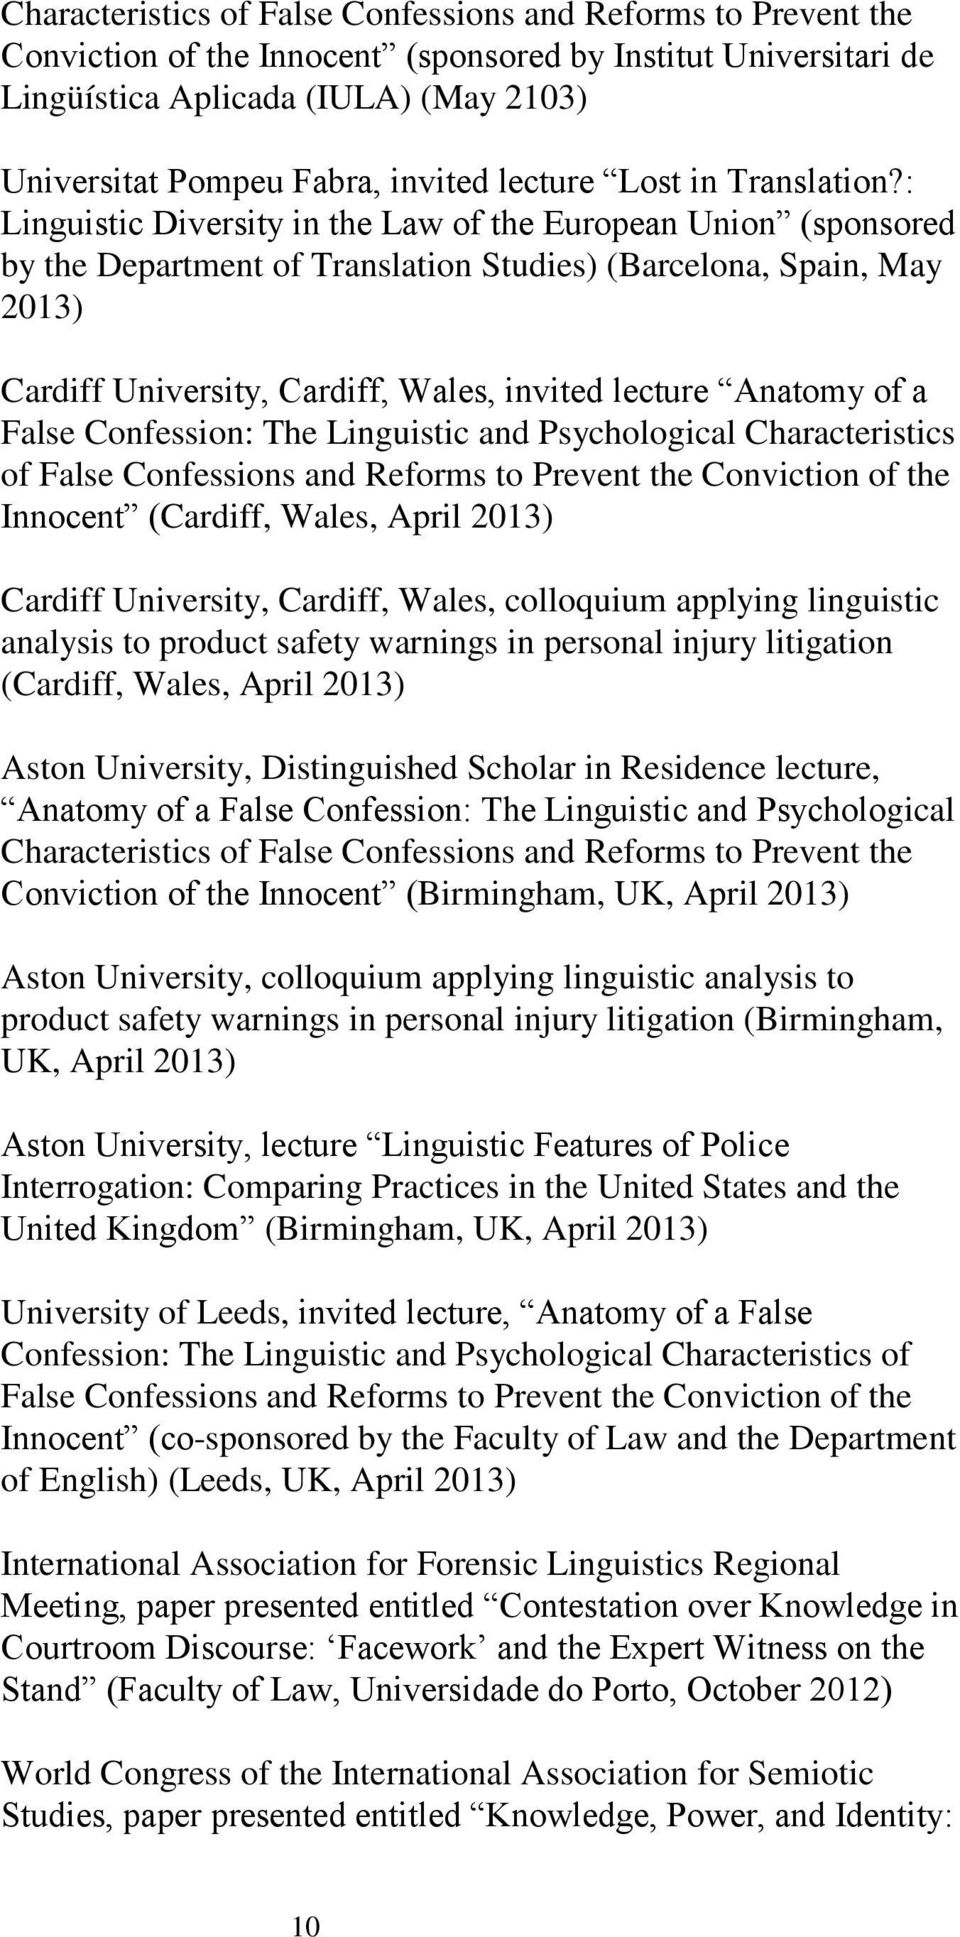 : Linguistic Diversity in the Law of the European Union (sponsored by the Department of Translation Studies) (Barcelona, Spain, May 2013) Cardiff University, Cardiff, Wales, invited lecture Anatomy